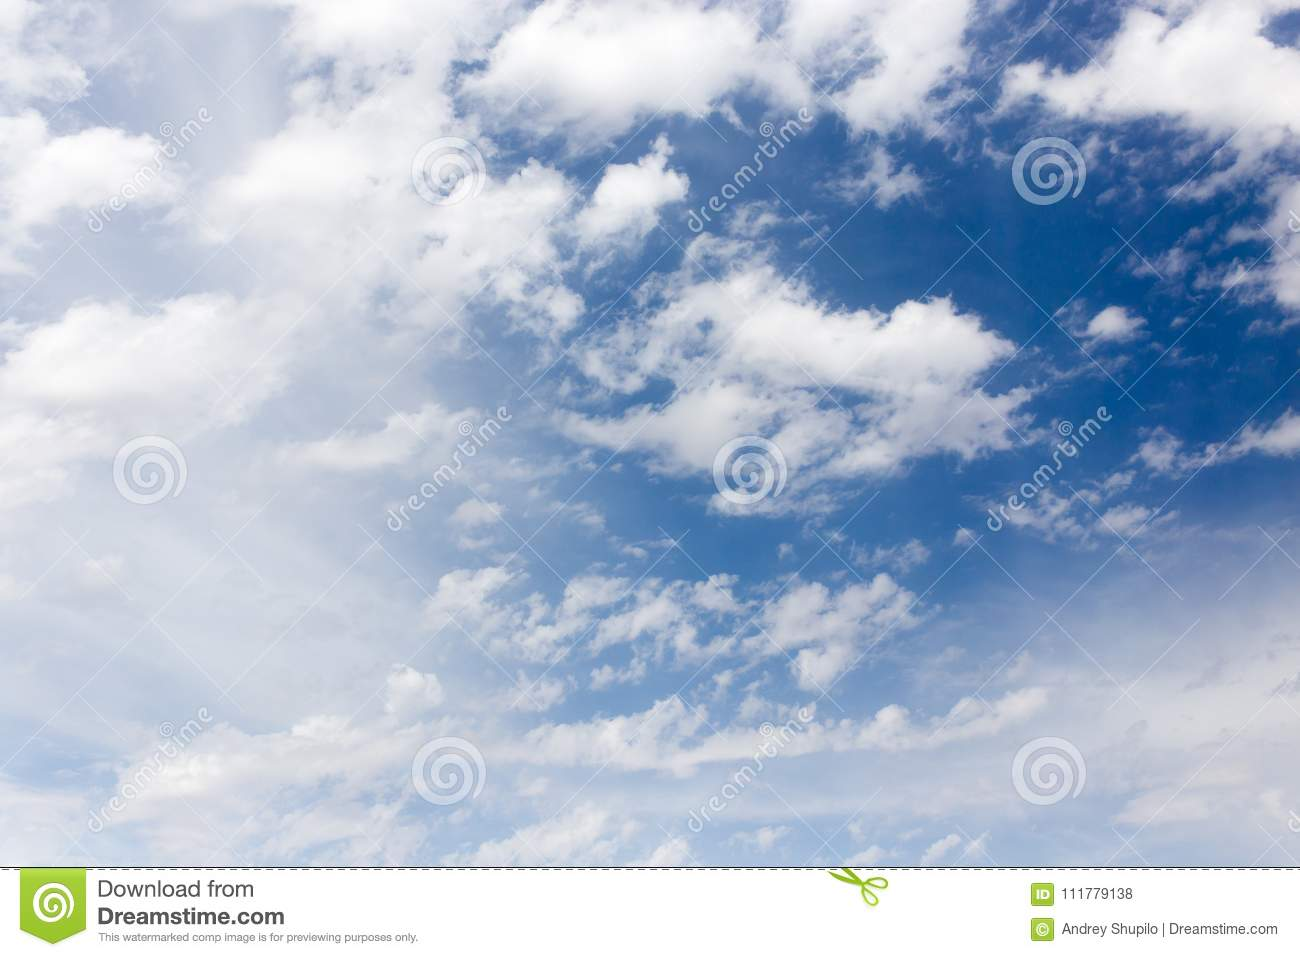 Clouds in the blue sky as background